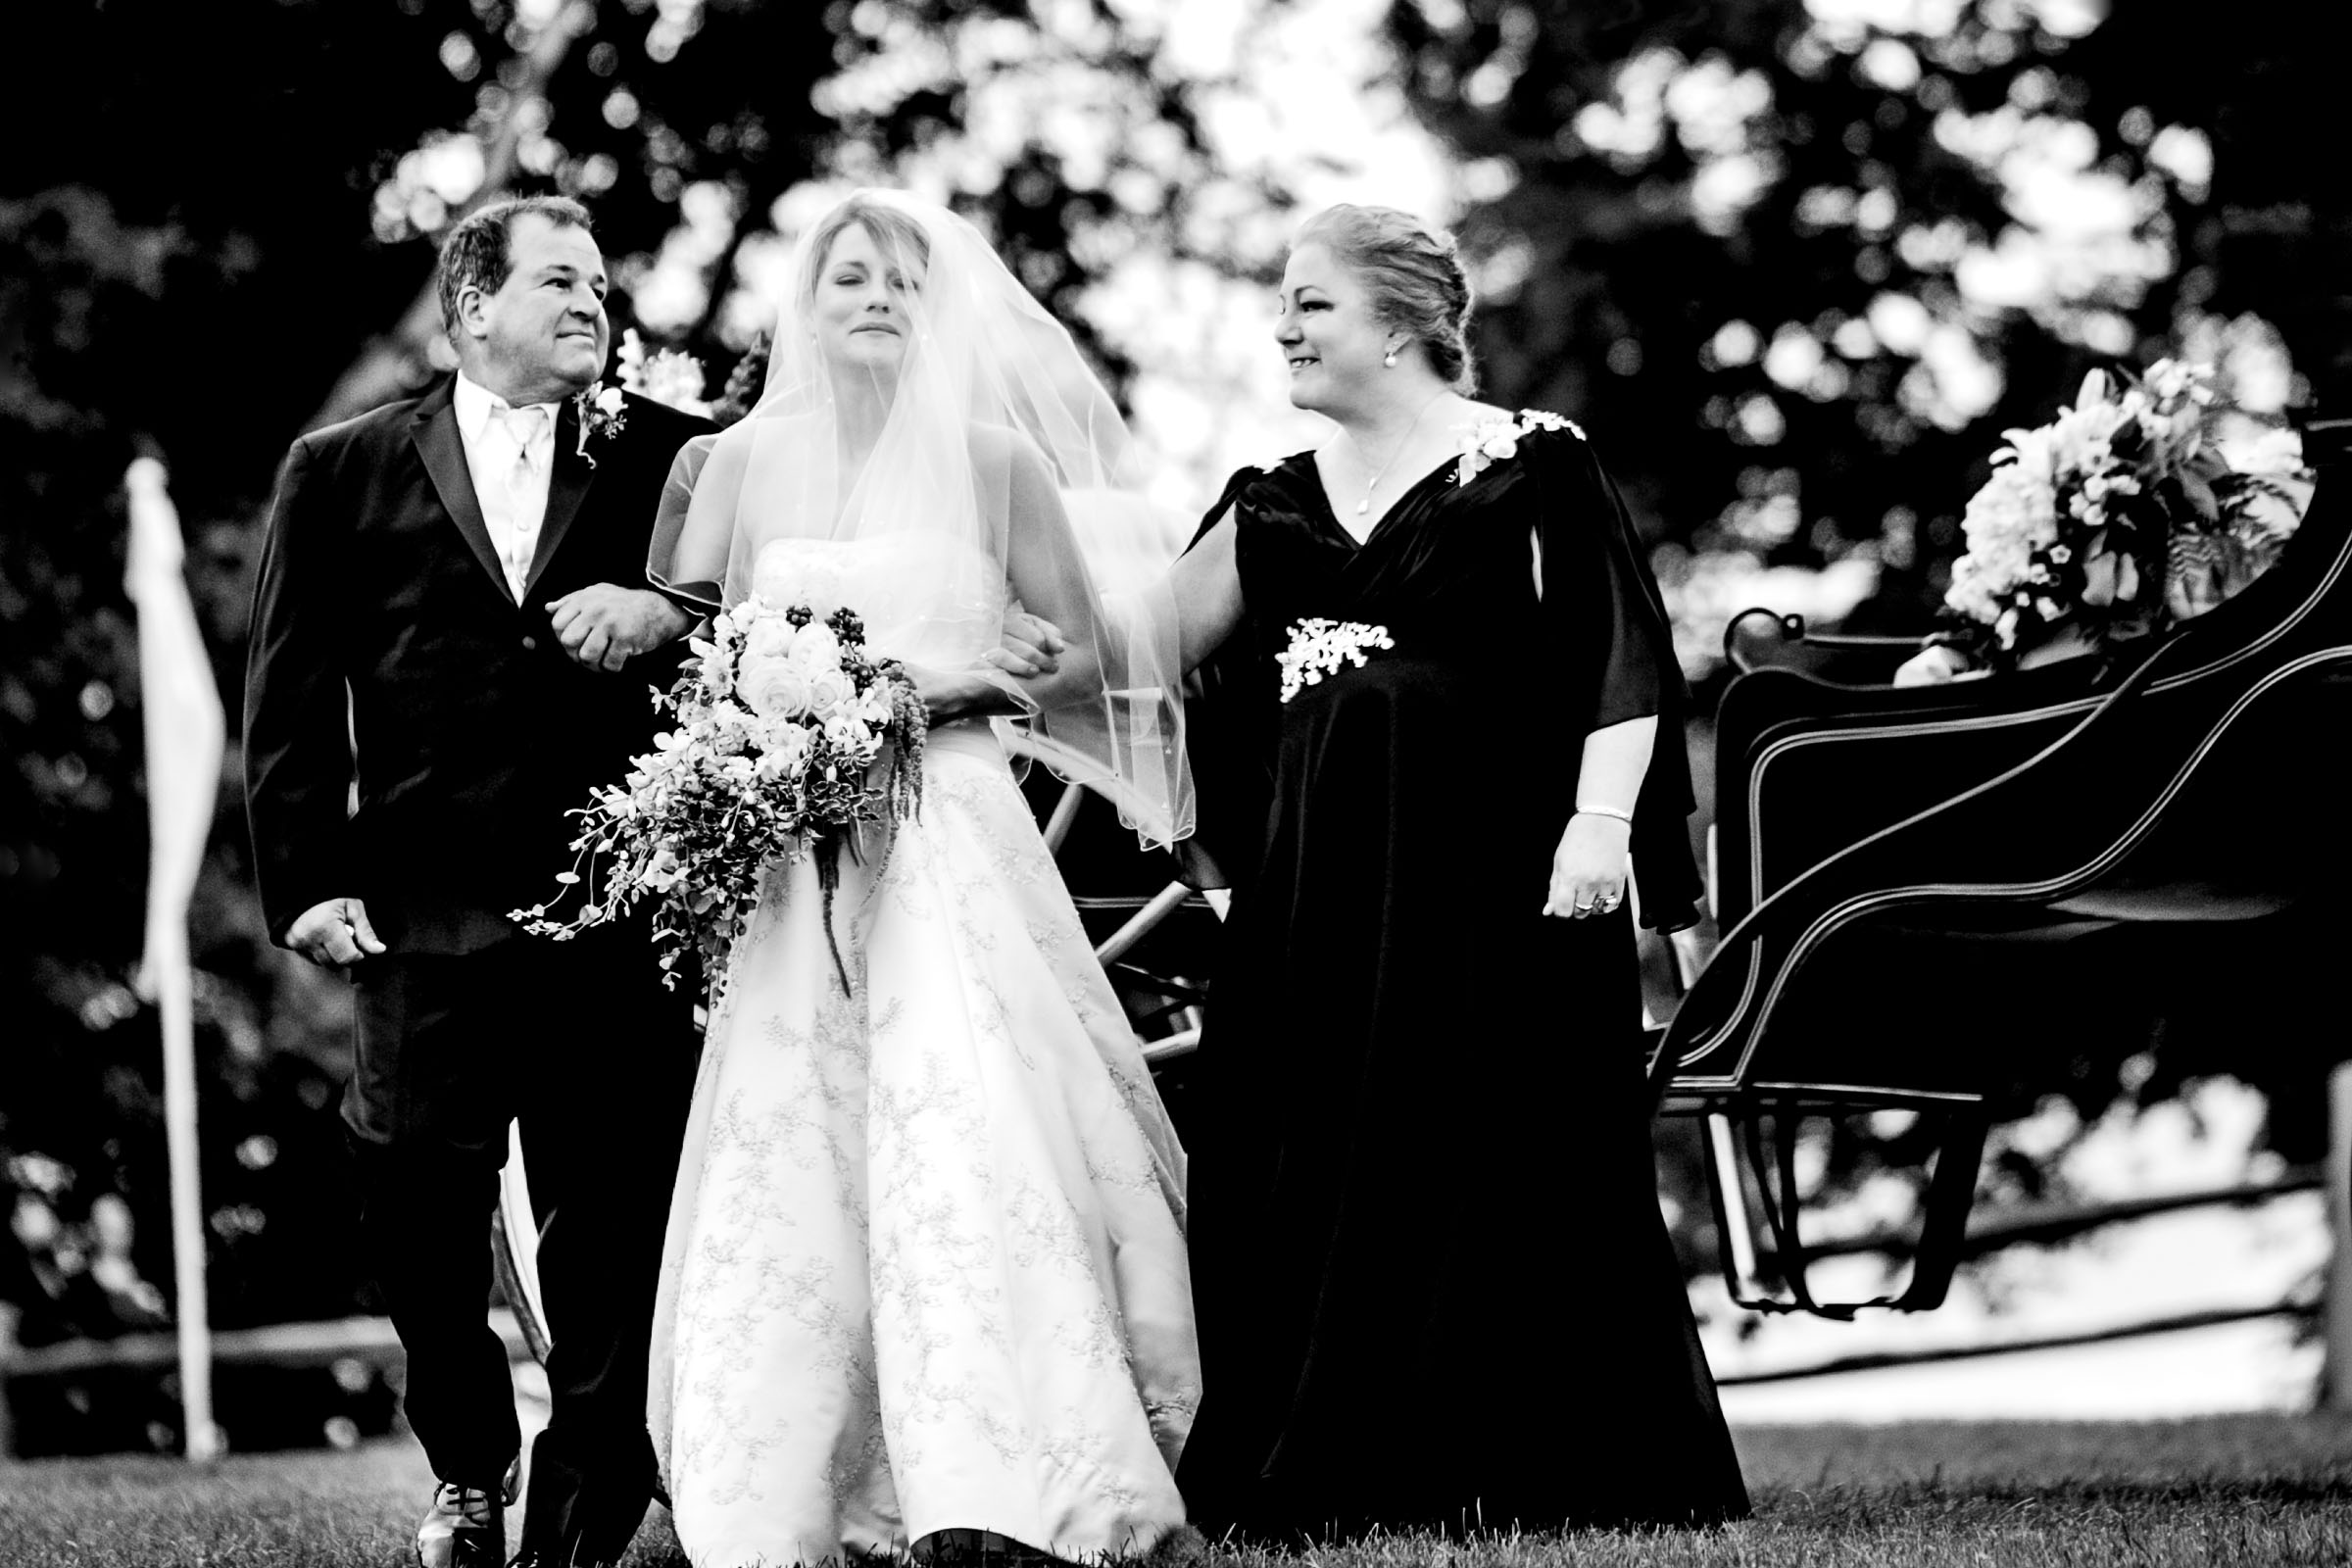 Emotional bride walking with her emotional parents into her Trapp Family Lodge wedding ceremony in Stowe, Vermont.